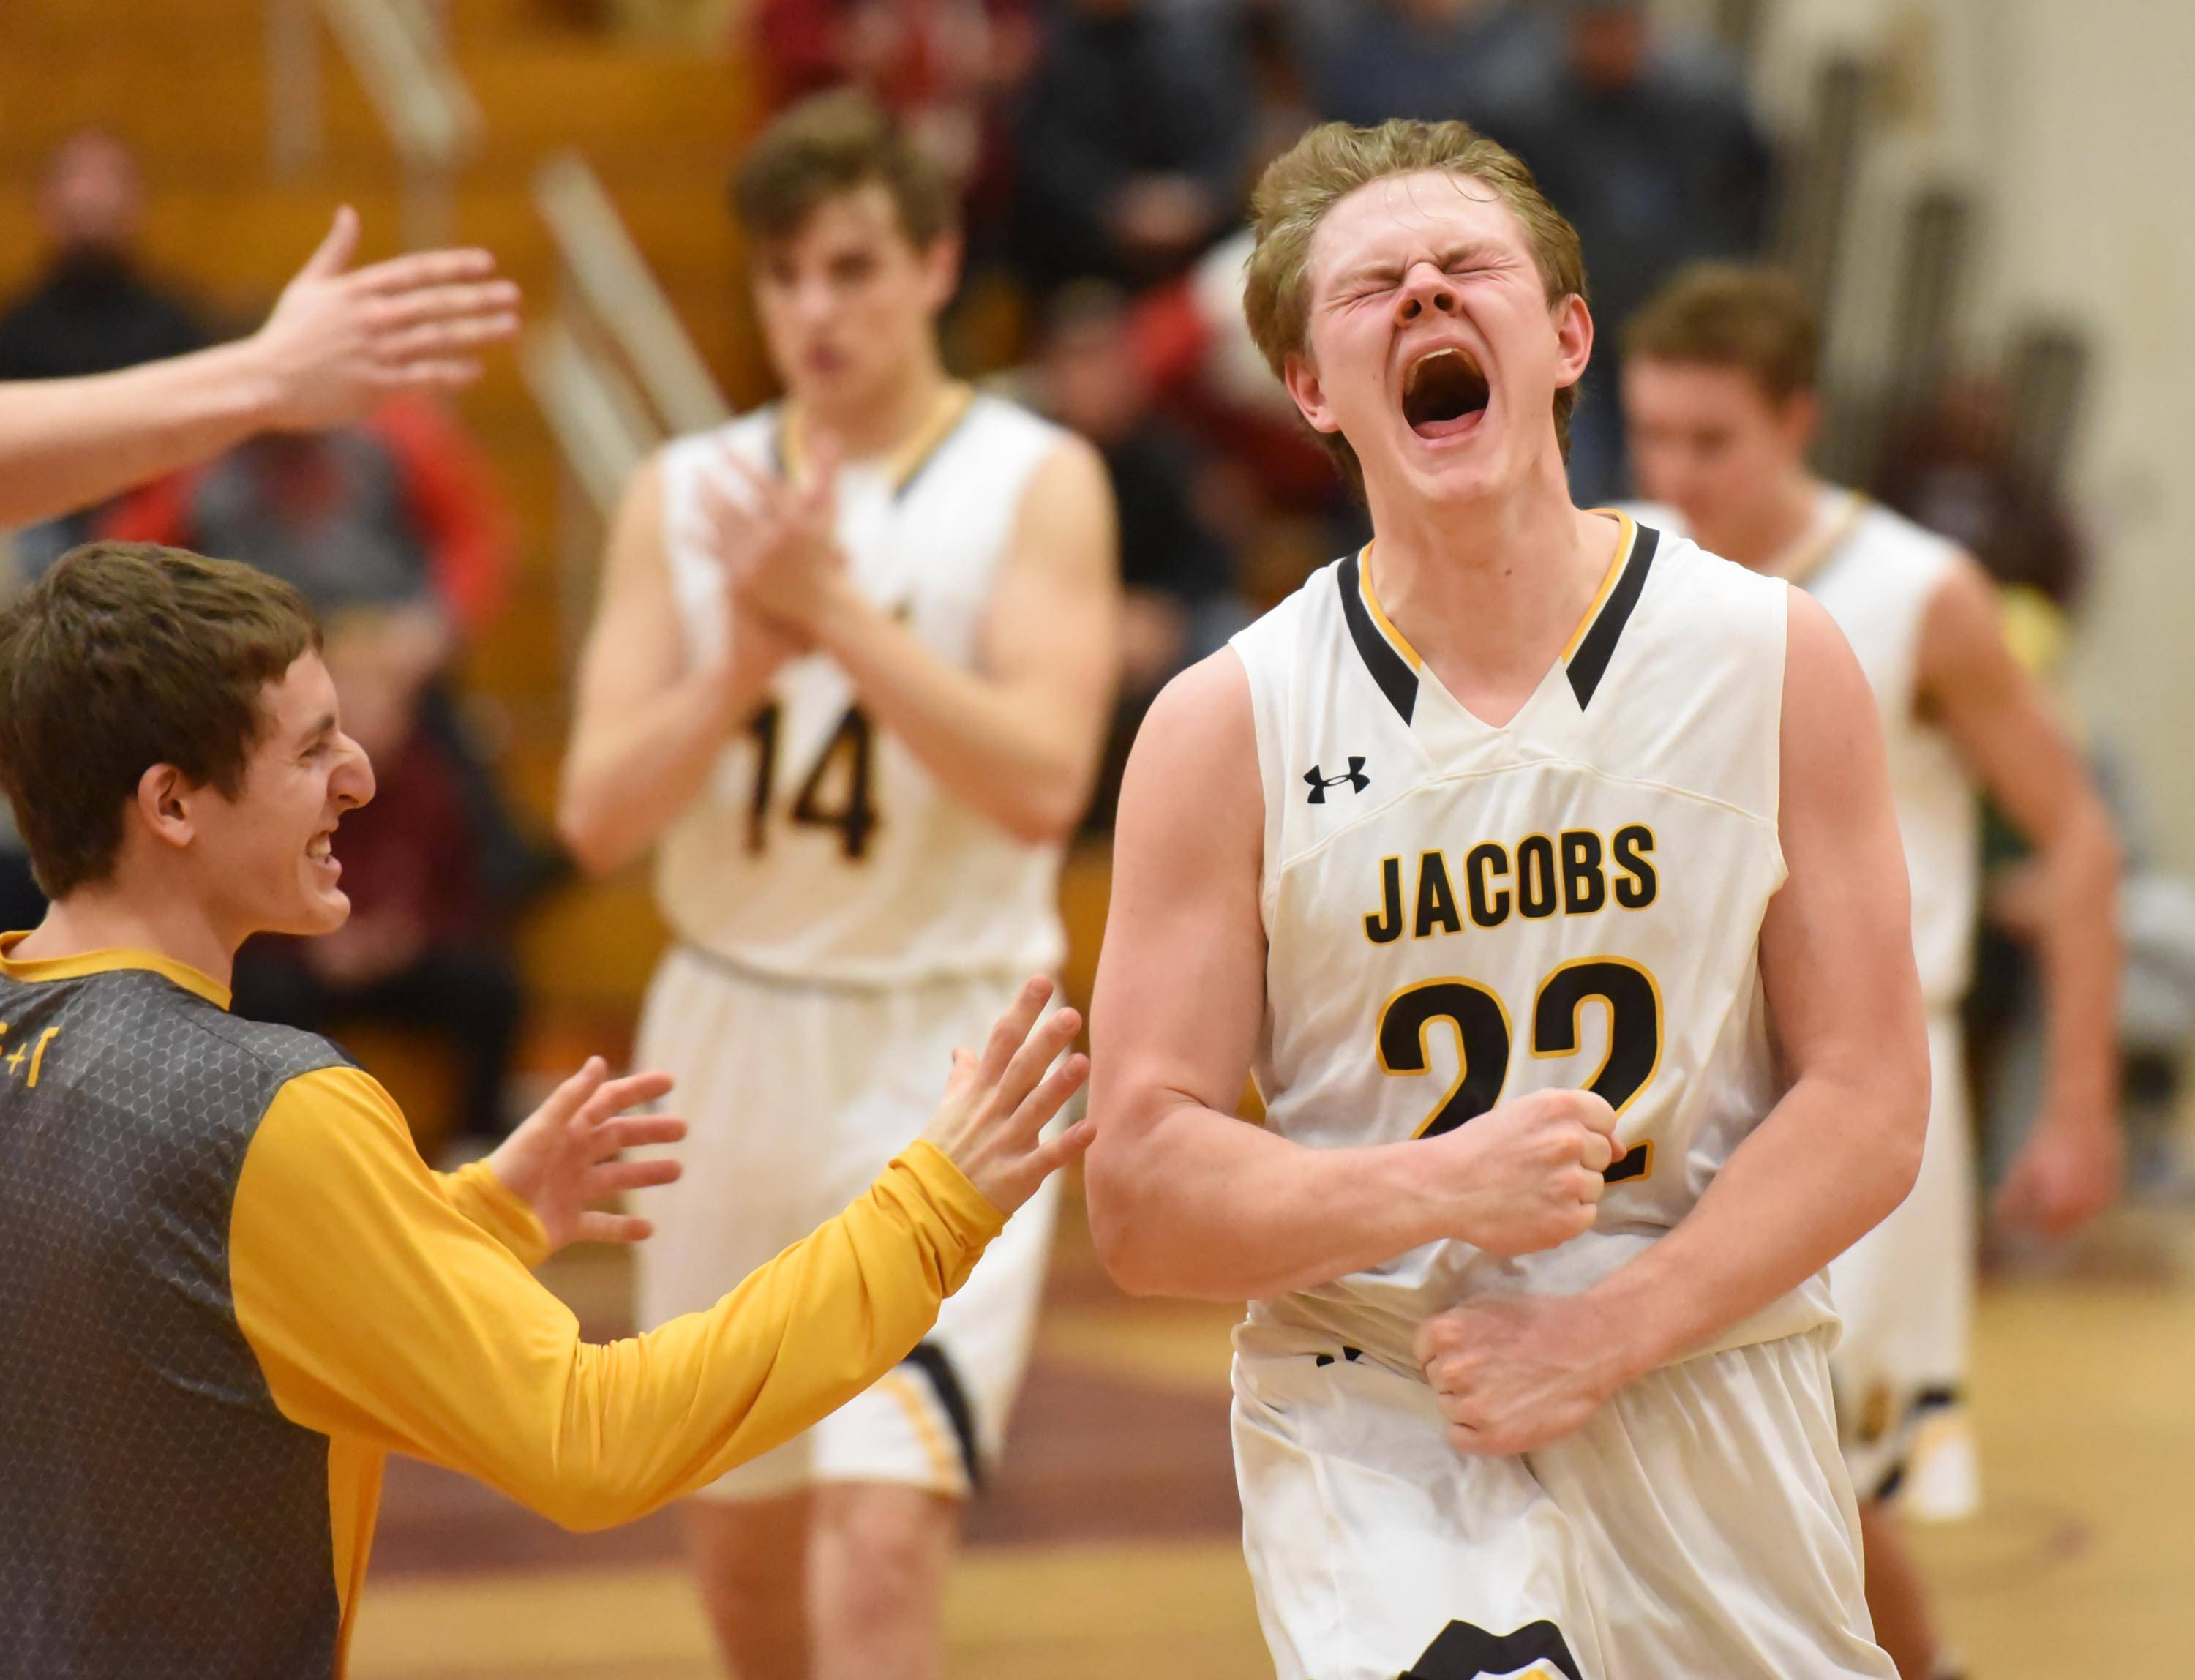 Jacobs reaches Sweet Sixteen for first time in school history